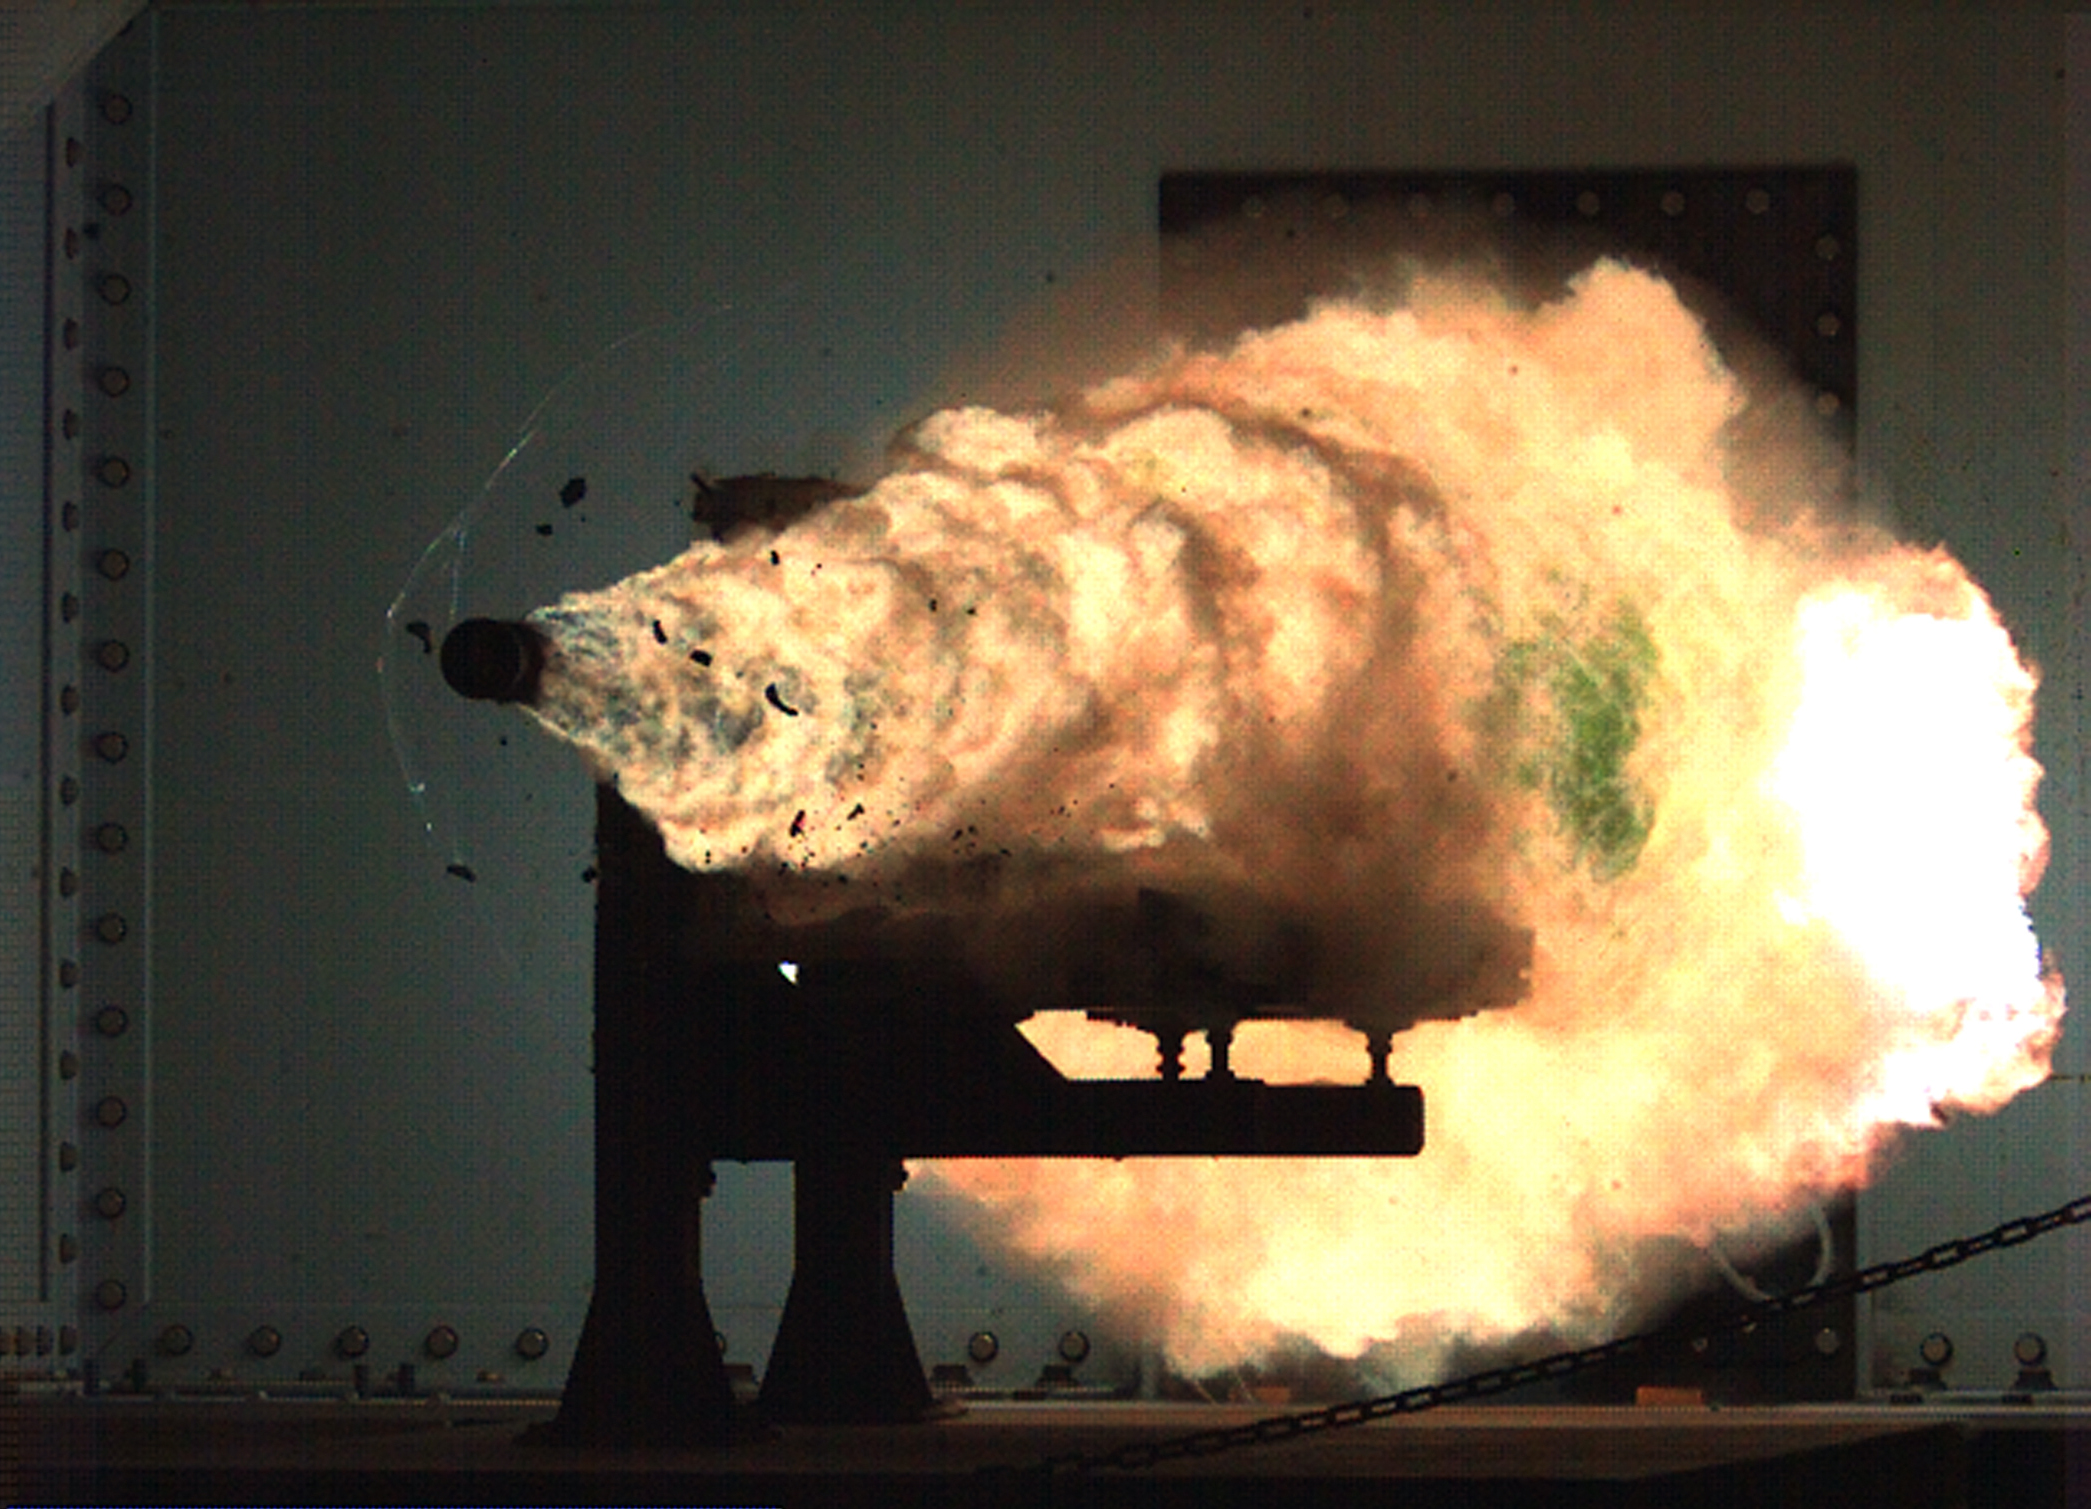 080131-N-0000X-001 DAHLGREN, Va. (Jan. 31, 2008) Photograph taken from a high-speed video camera during a record-setting firing of an electromagnetic railgun (EMRG) at Naval Surface Warfare Center, Dahlgren, Va., on January 31, 2008, firing at 10.64MJ (megajoules) with a muzzle velocity of 2520 meters per second. The Office of Naval ResearchÕs EMRG program is part of the Department of the NavyÕs Science and Technology investments, focused on developing new technologies to support Navy and Marine Corps war fighting needs. This photograph is a frame taken from a high-speed video camera. U.S. Navy Photograph (Released)